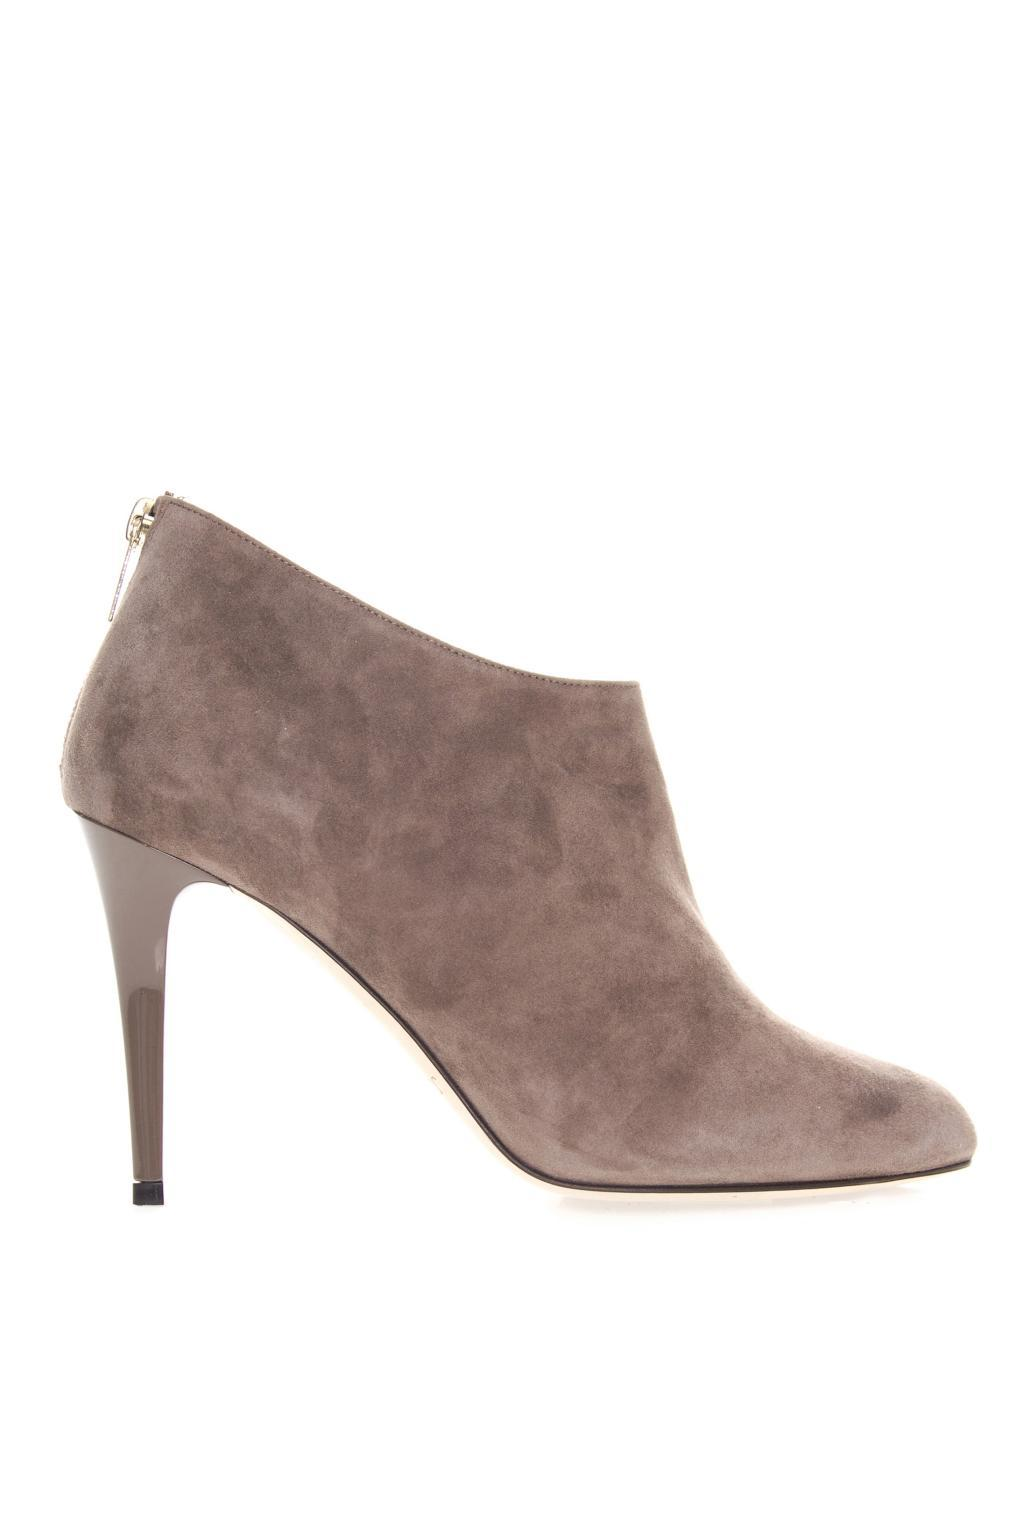 b9ee38d7d8d Gallery. Previously sold at  VITKAC · Women s Suede Boots Women s Jimmy  Choo Mendez